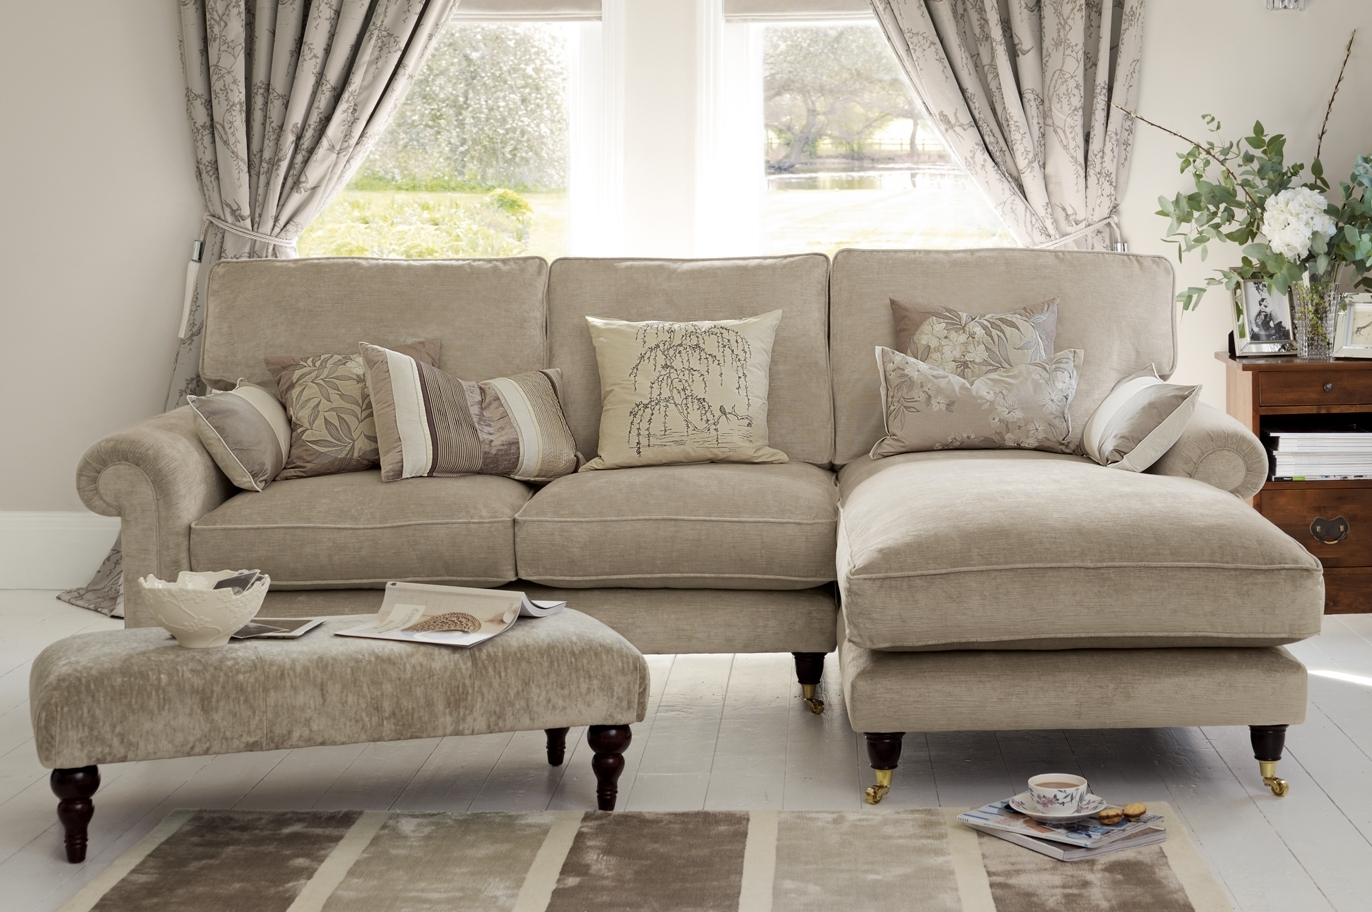 "Kingston"" Sectional Sofa With Chaise In Sable Beige From Laura Pertaining To 2018 Beige Sectionals With Chaise (Gallery 6 of 15)"